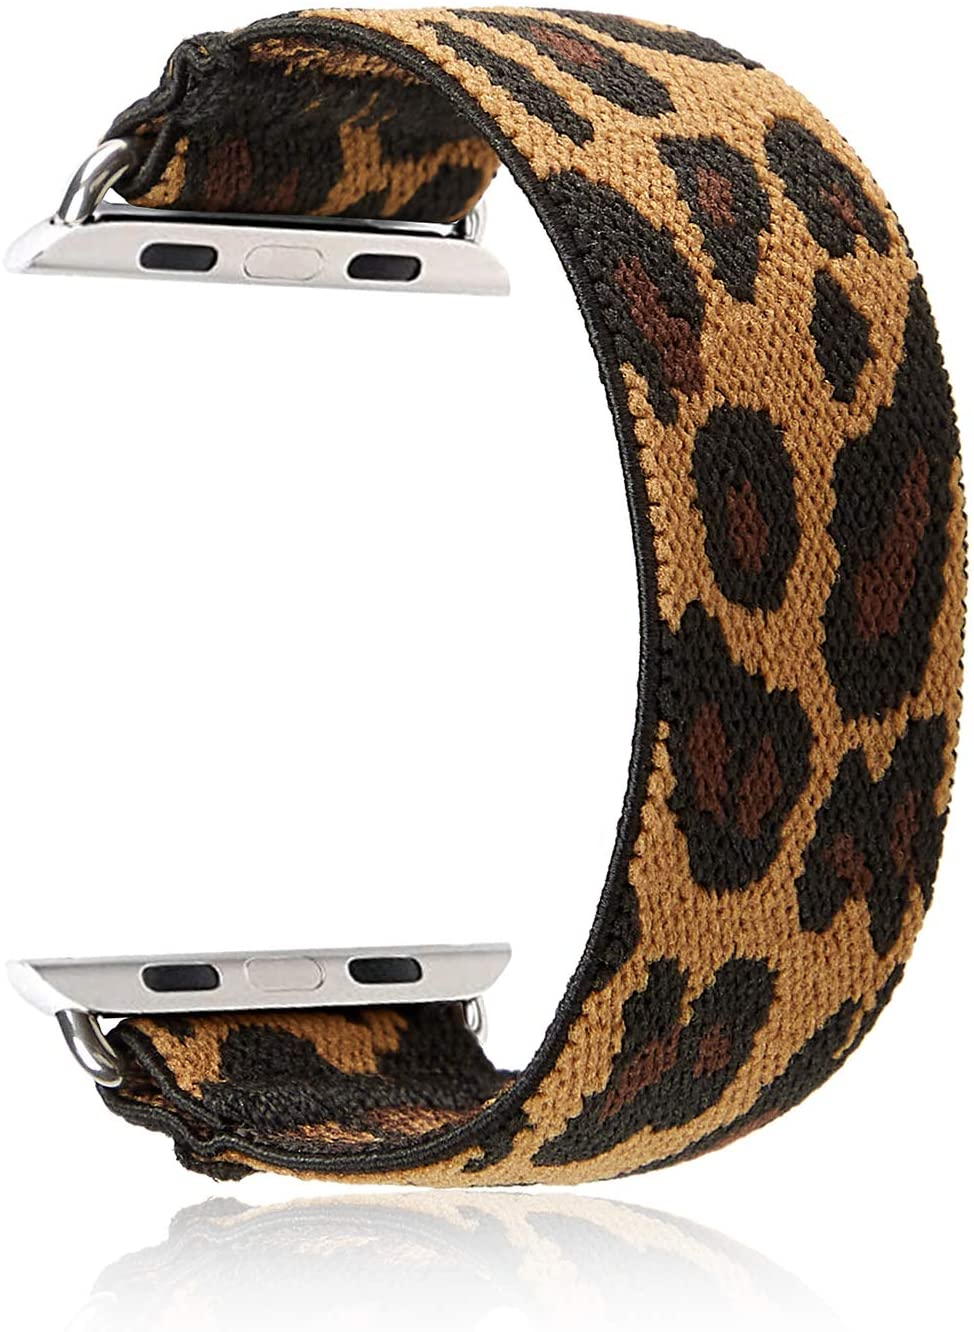 Elastic Band Compatible for Apple Watch, Scrunchie Stretch Wristbands Replacement Bracelet Loop Sport Strap for iWatch Series 1 2 3 4 5, Men Women Girls, Cheetah, 38/40mm, L